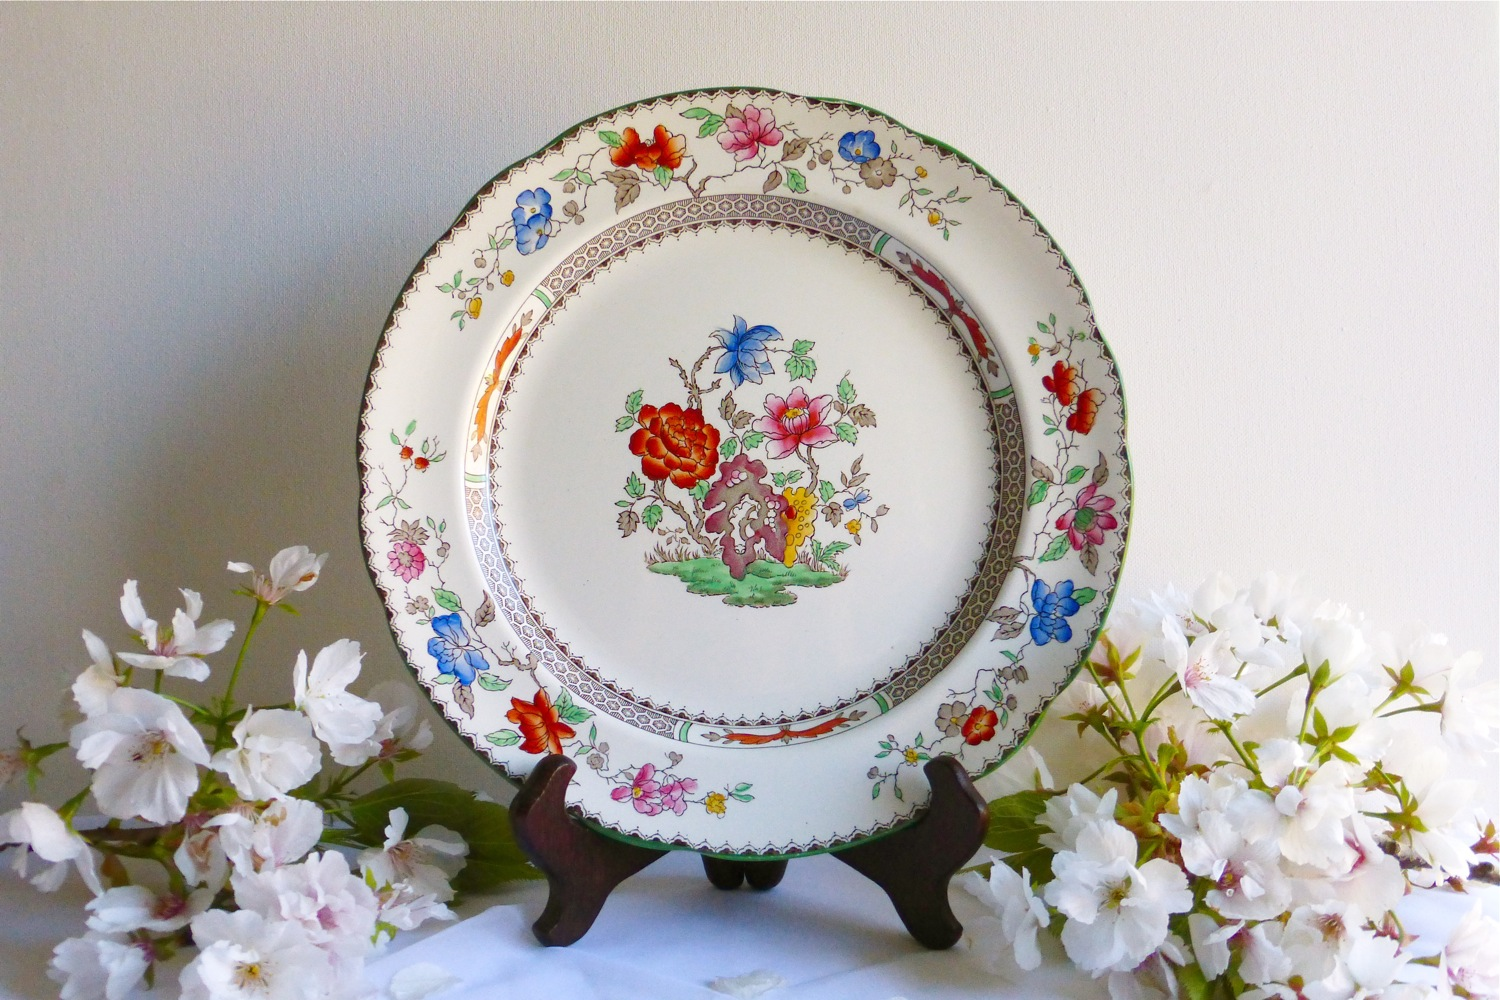 Copeland Spode Chinese Rose, Copeland Spode Chinese Rose dinner plate, chinoiserie, chinoiserie revival, English china, English chinese-style china